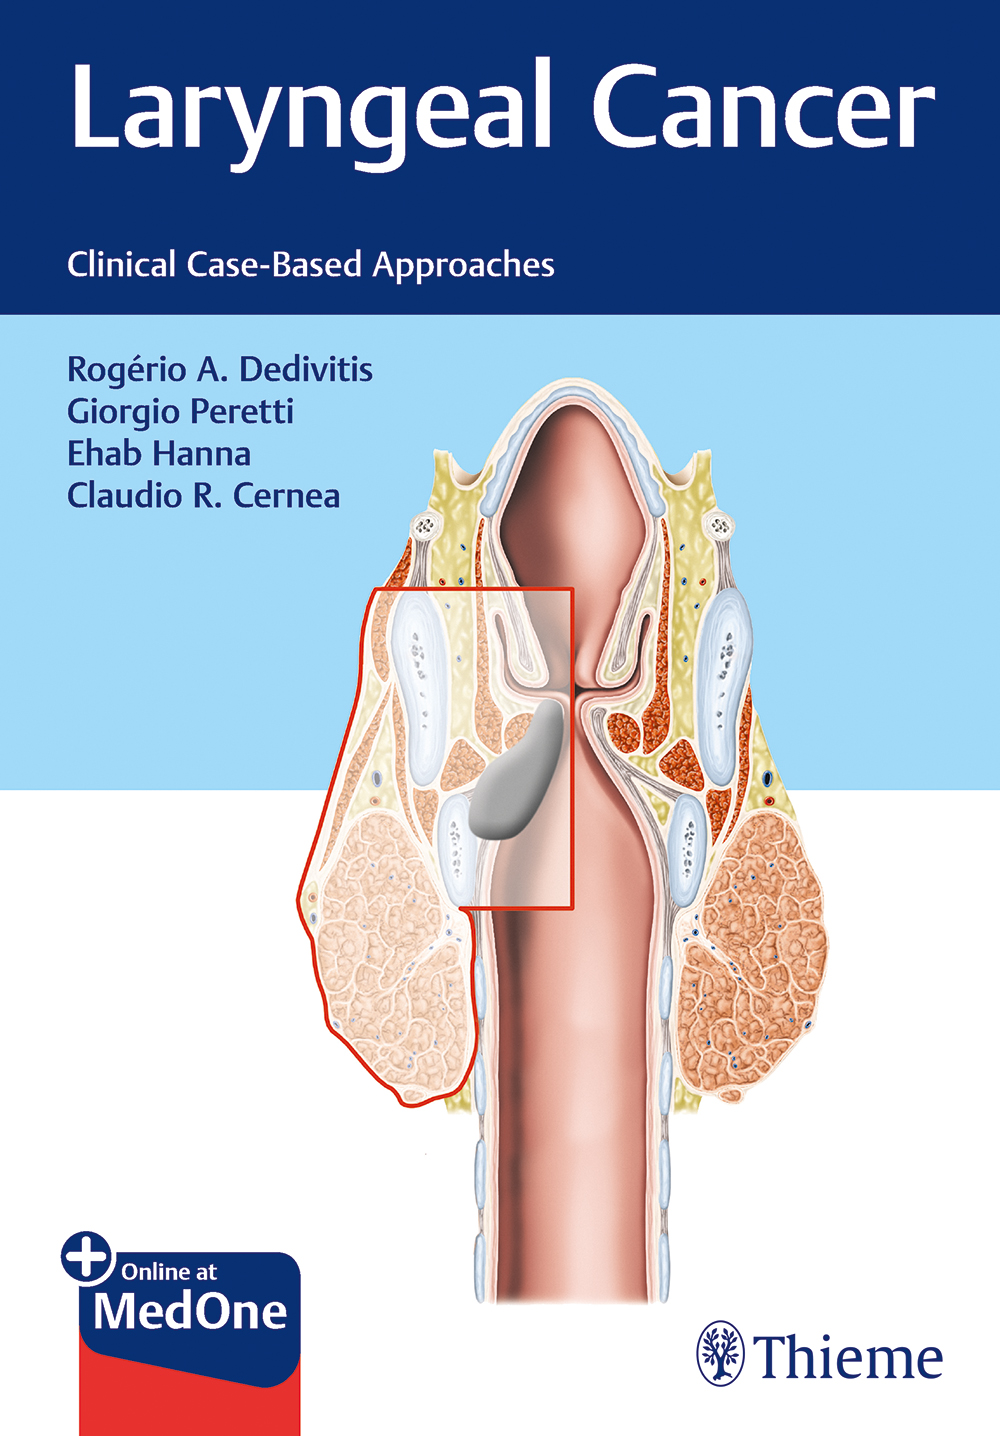 Laryngeal Cancer: Clinical Case-Based Approaches